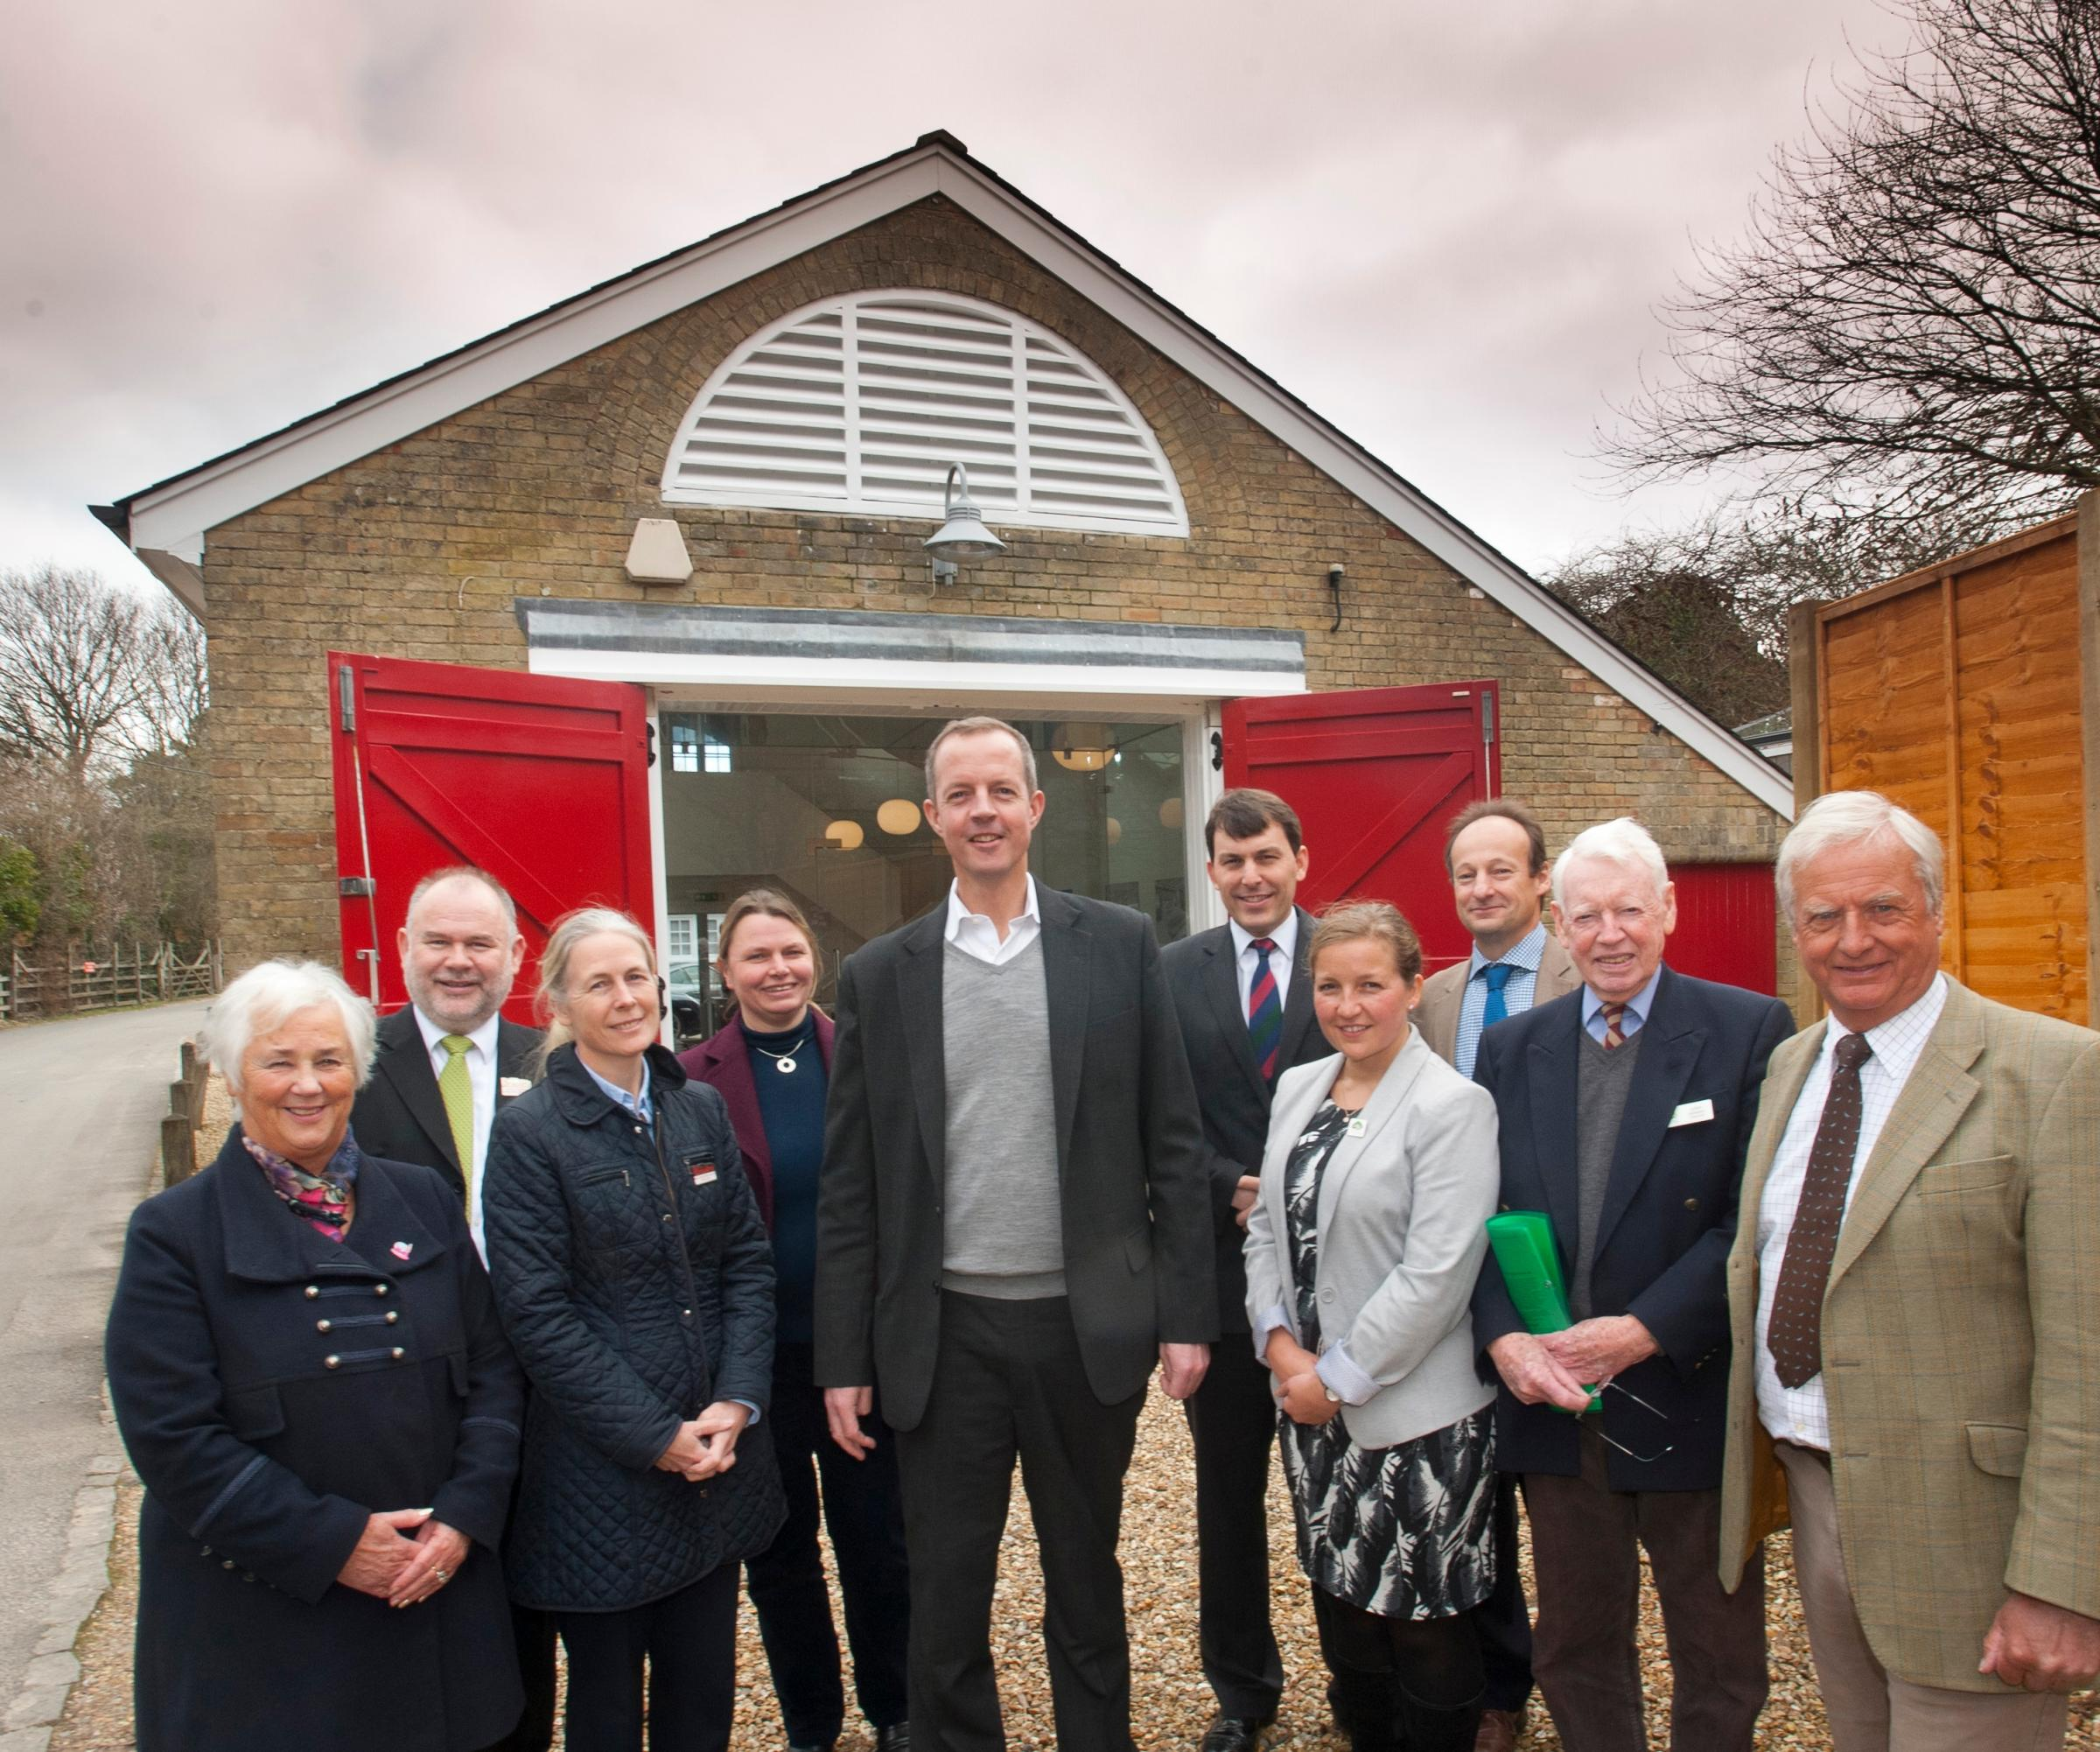 Planning Minister Nick Boles MP, centre, at the old fire station in Beaulieu with National Park officials, business leaders and Salisbury MP John Glen (on Mr Boles' left). Photo